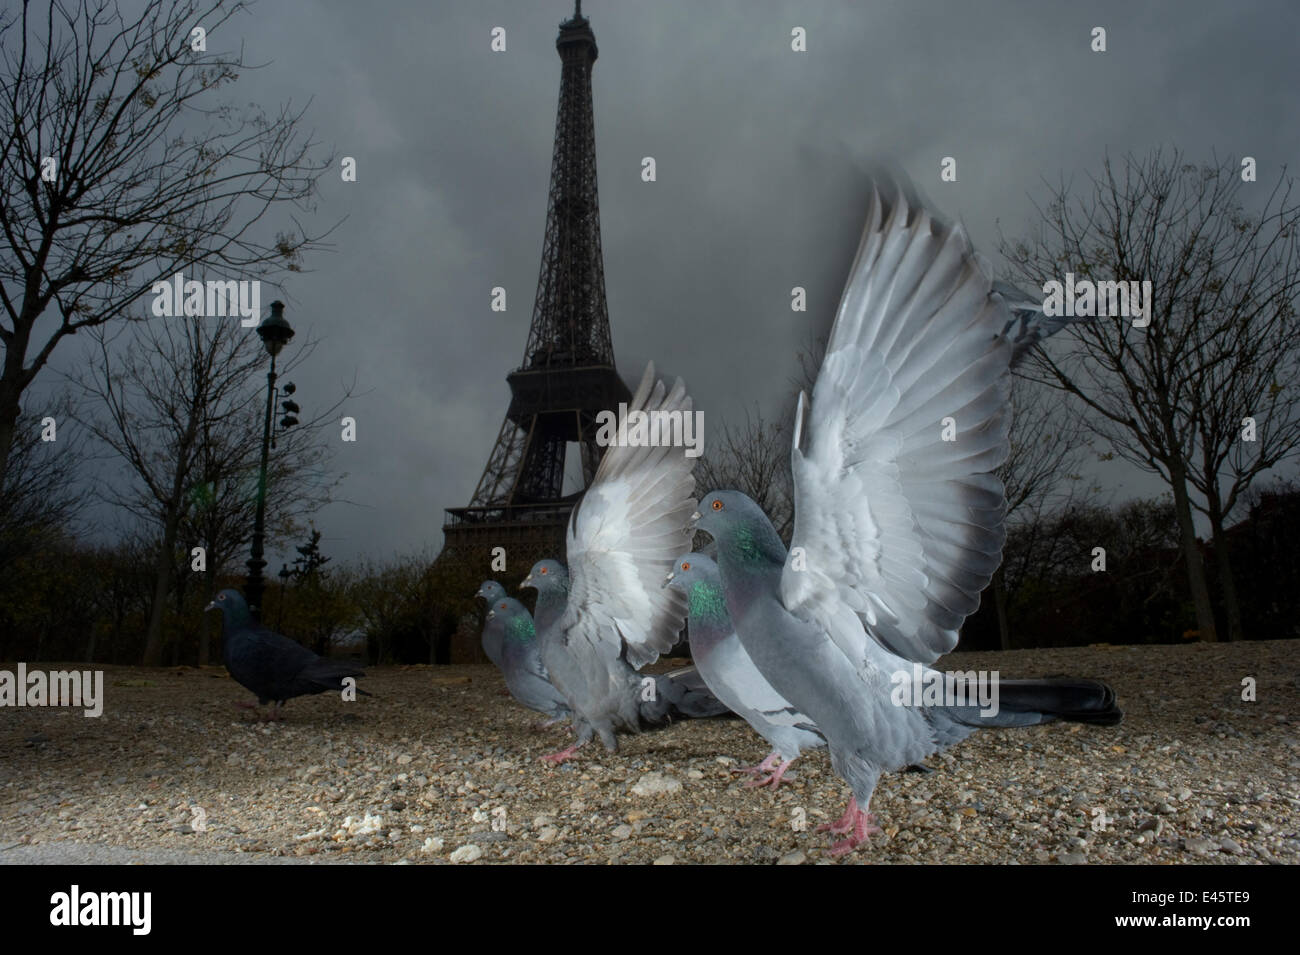 Flock of Feral pigeons (Columba livia)  in front of the Eiffel tower at dusk, Paris. France, November 2009. - Stock Image